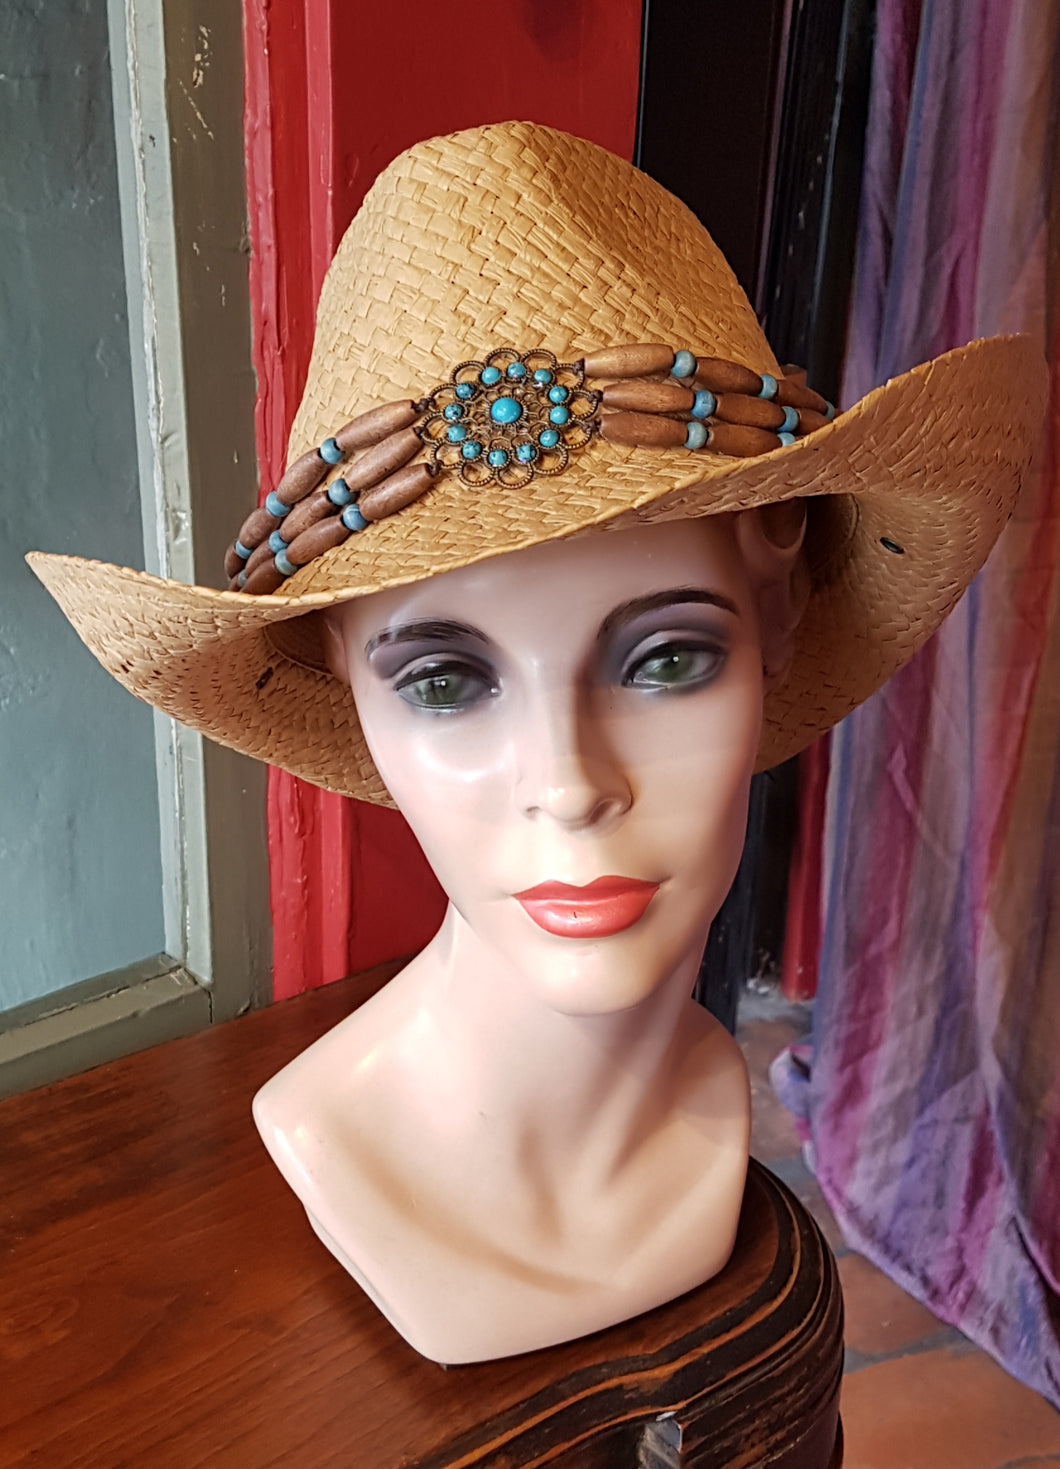 Straw Cowboy/Cowgirl Hat with Turquoise and wooden beads trim